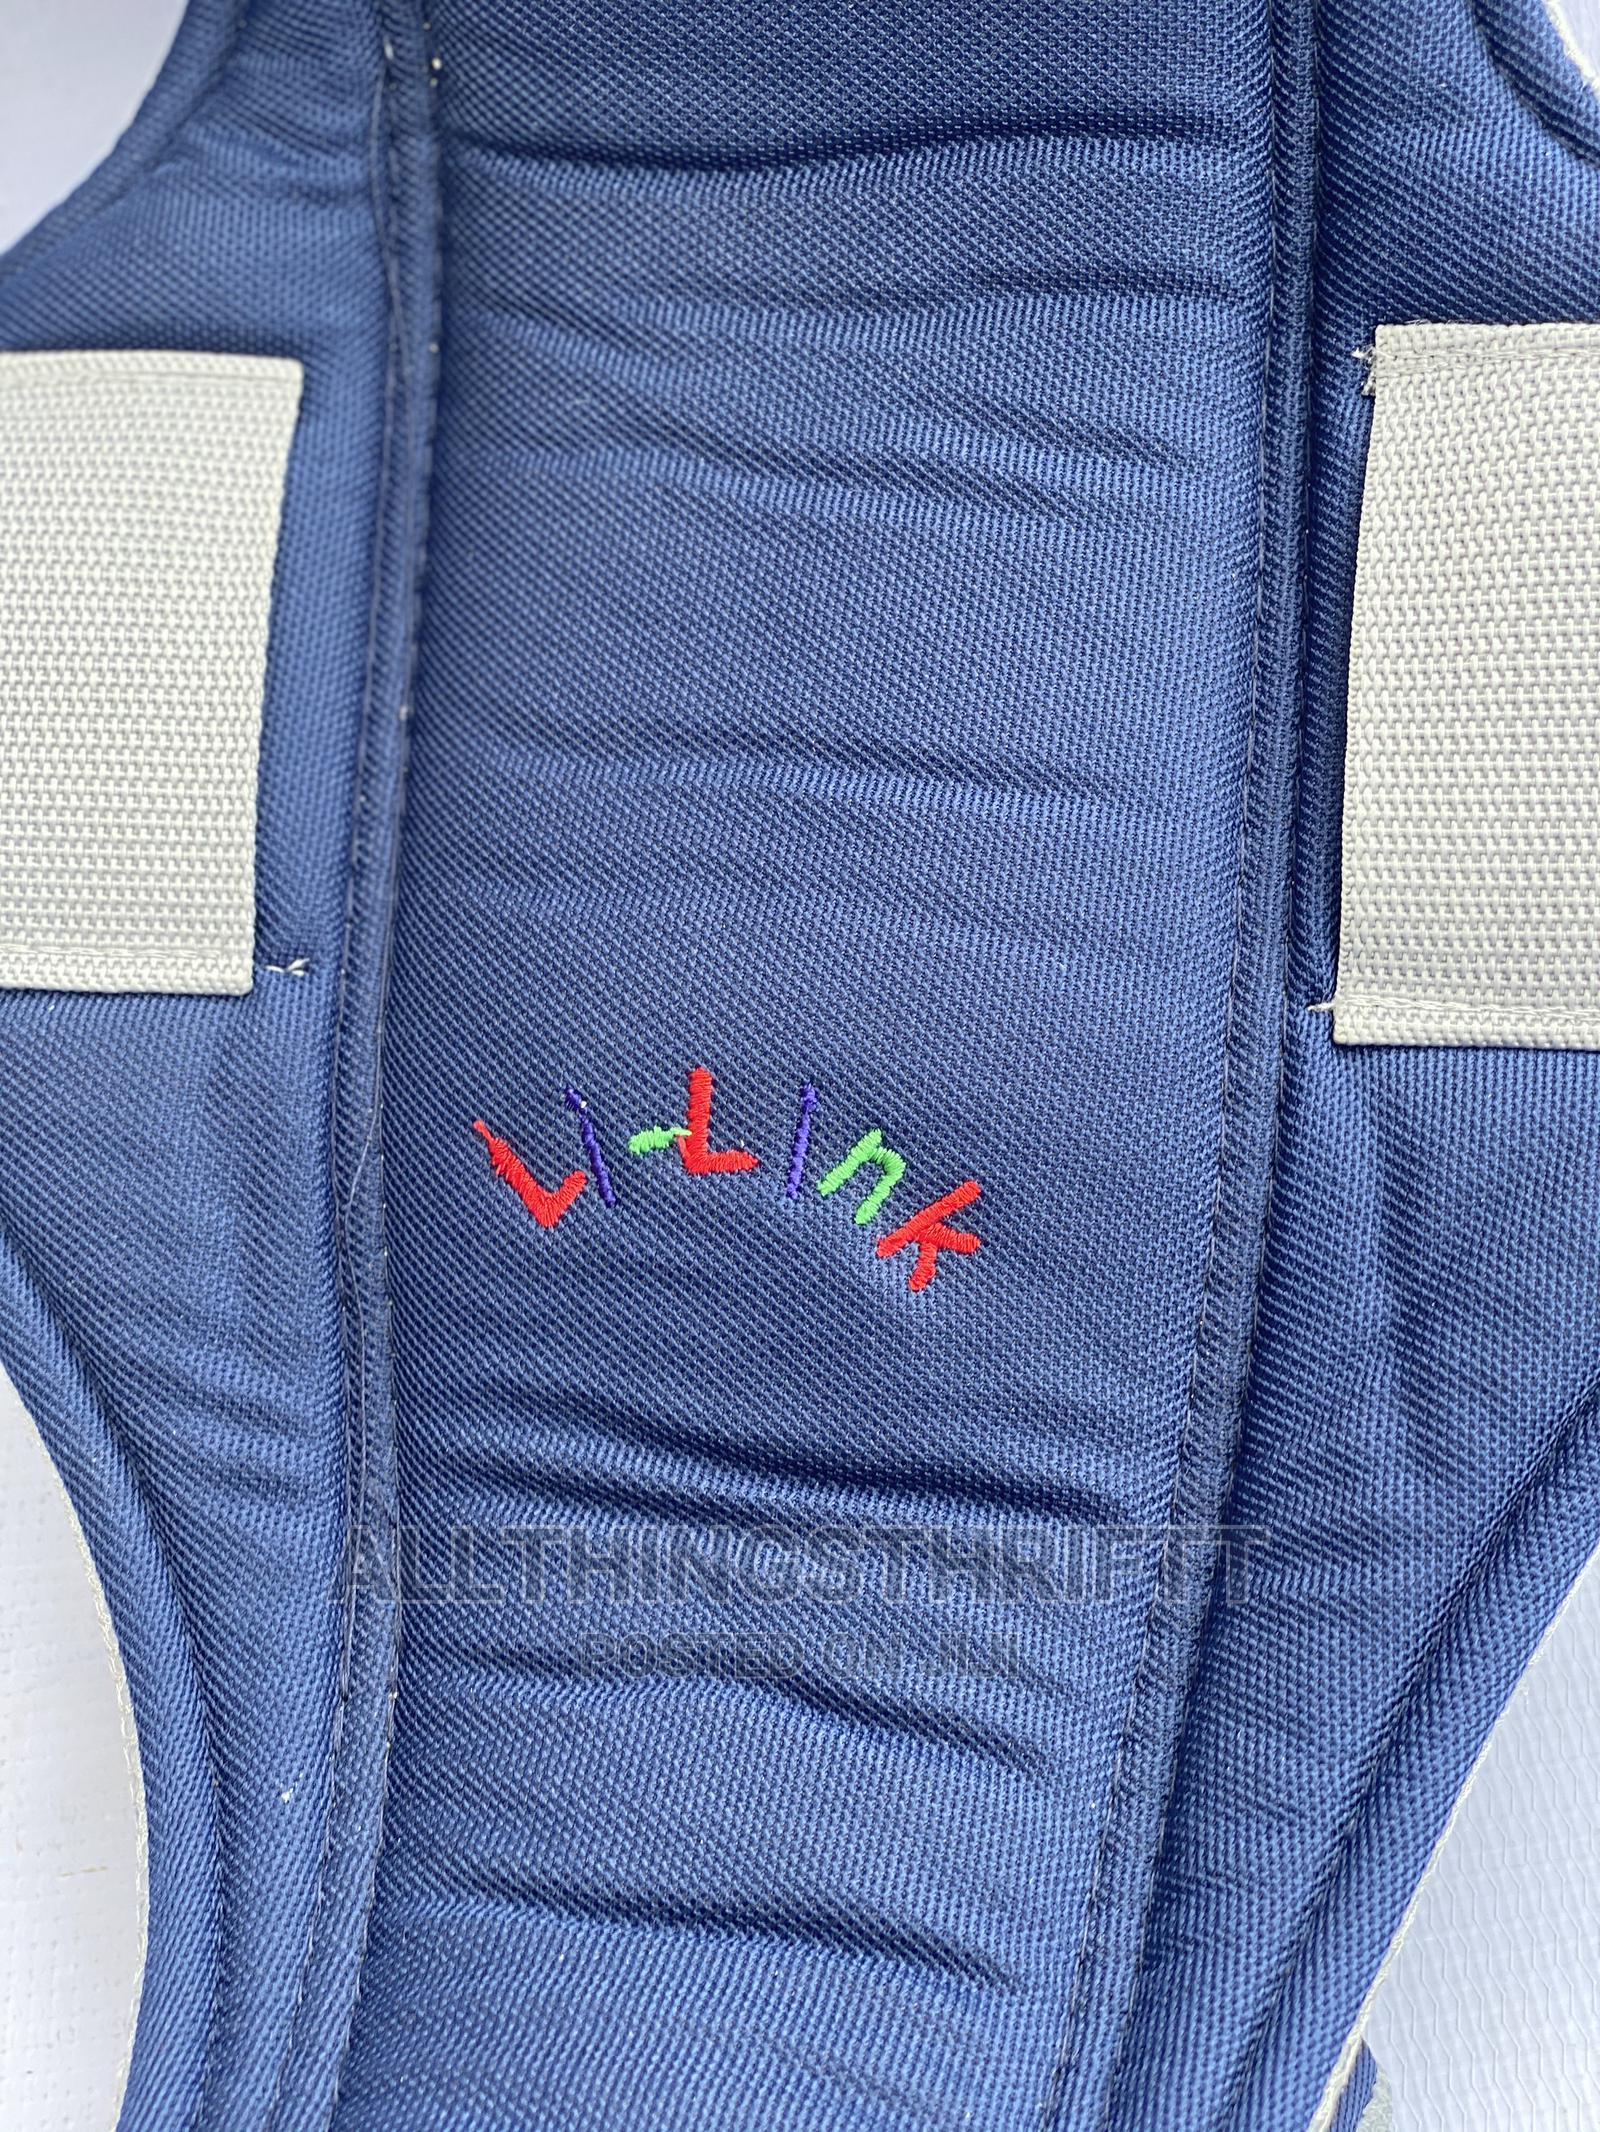 Archive: Tokunbo Uk Used Baby Carrier